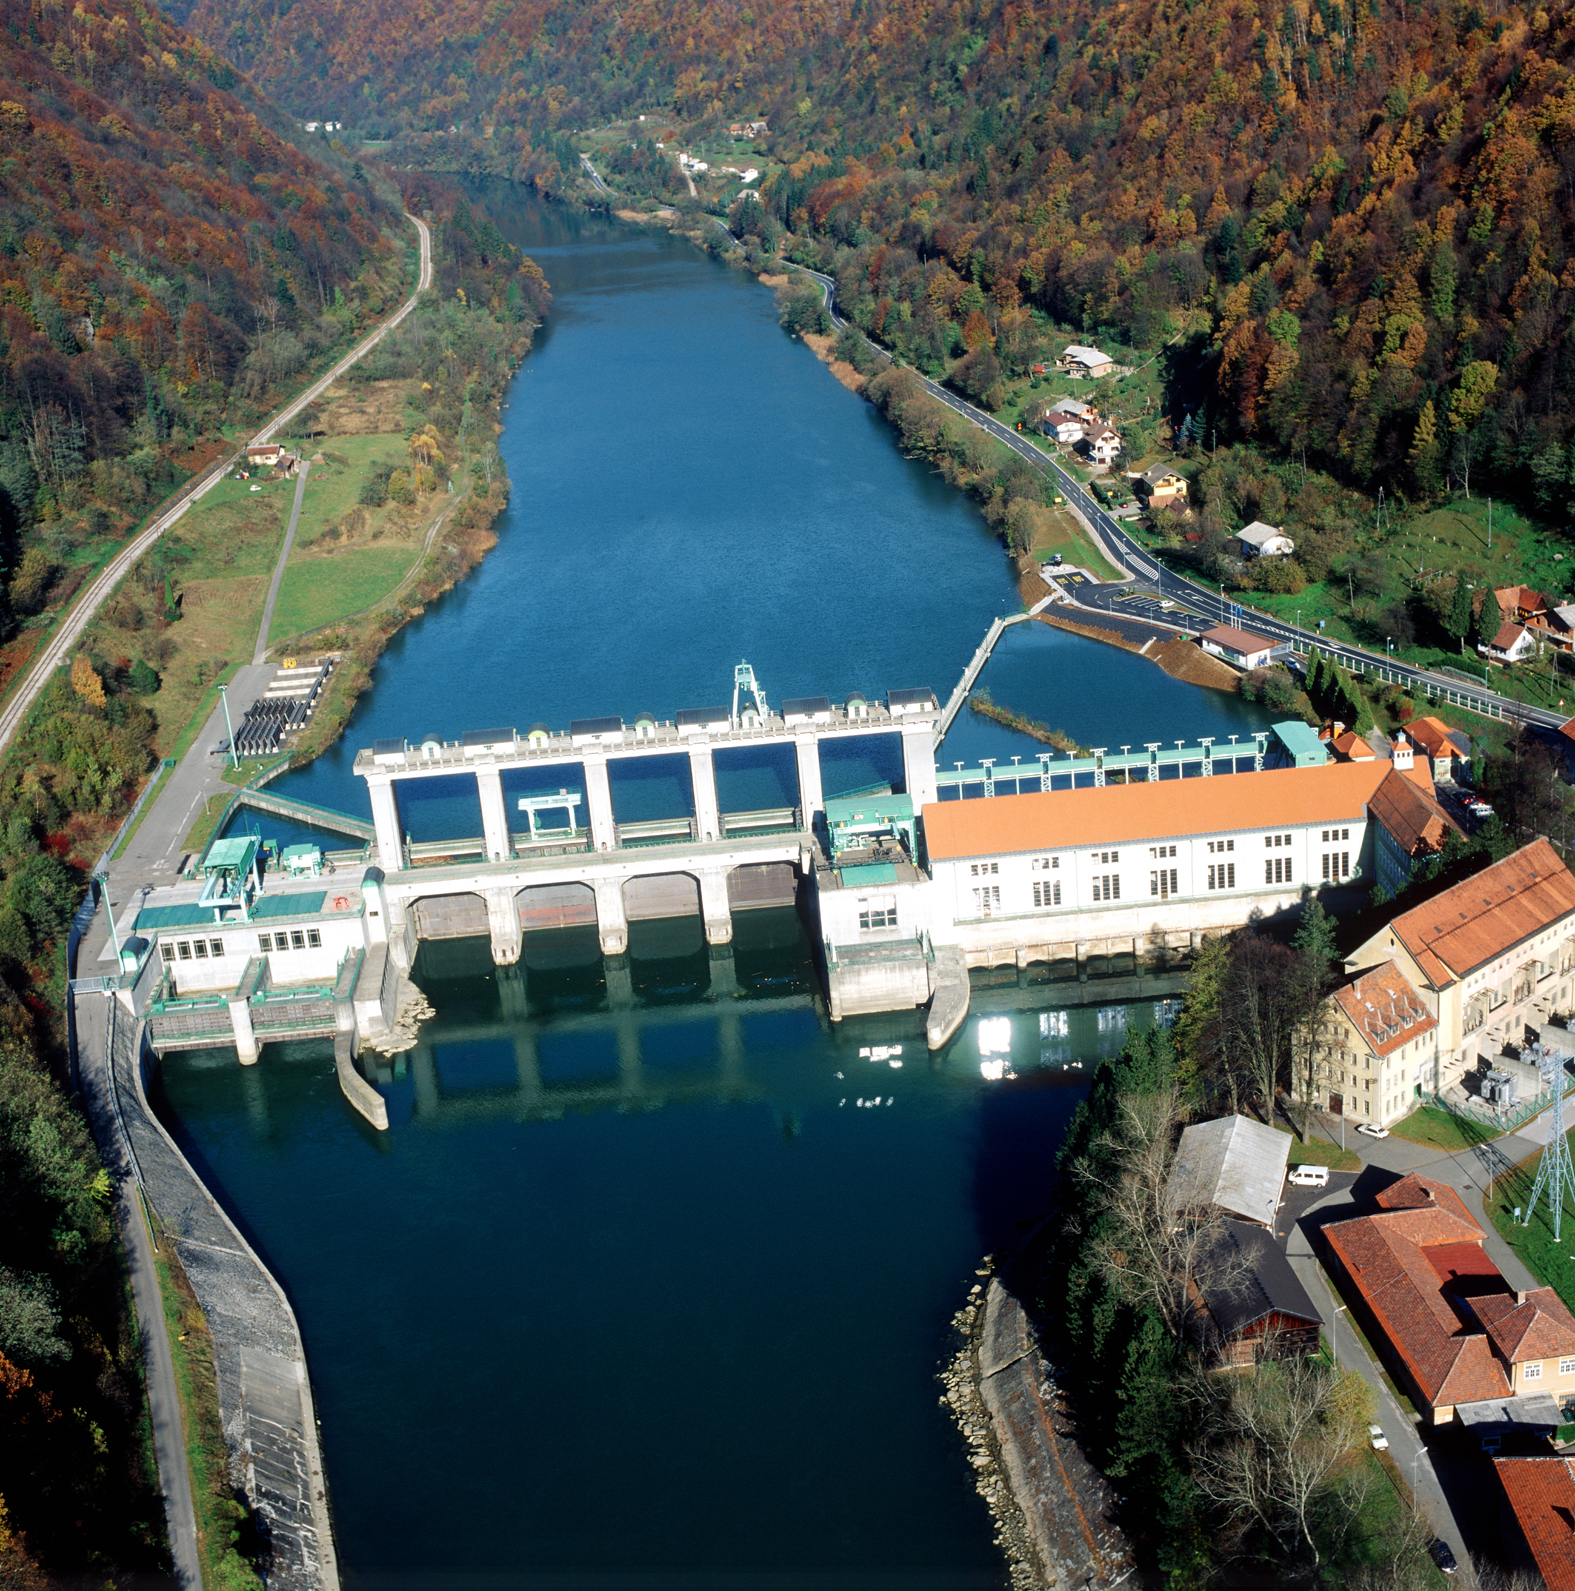 Utilization Of Wh From Hydro Power Plant Interreg